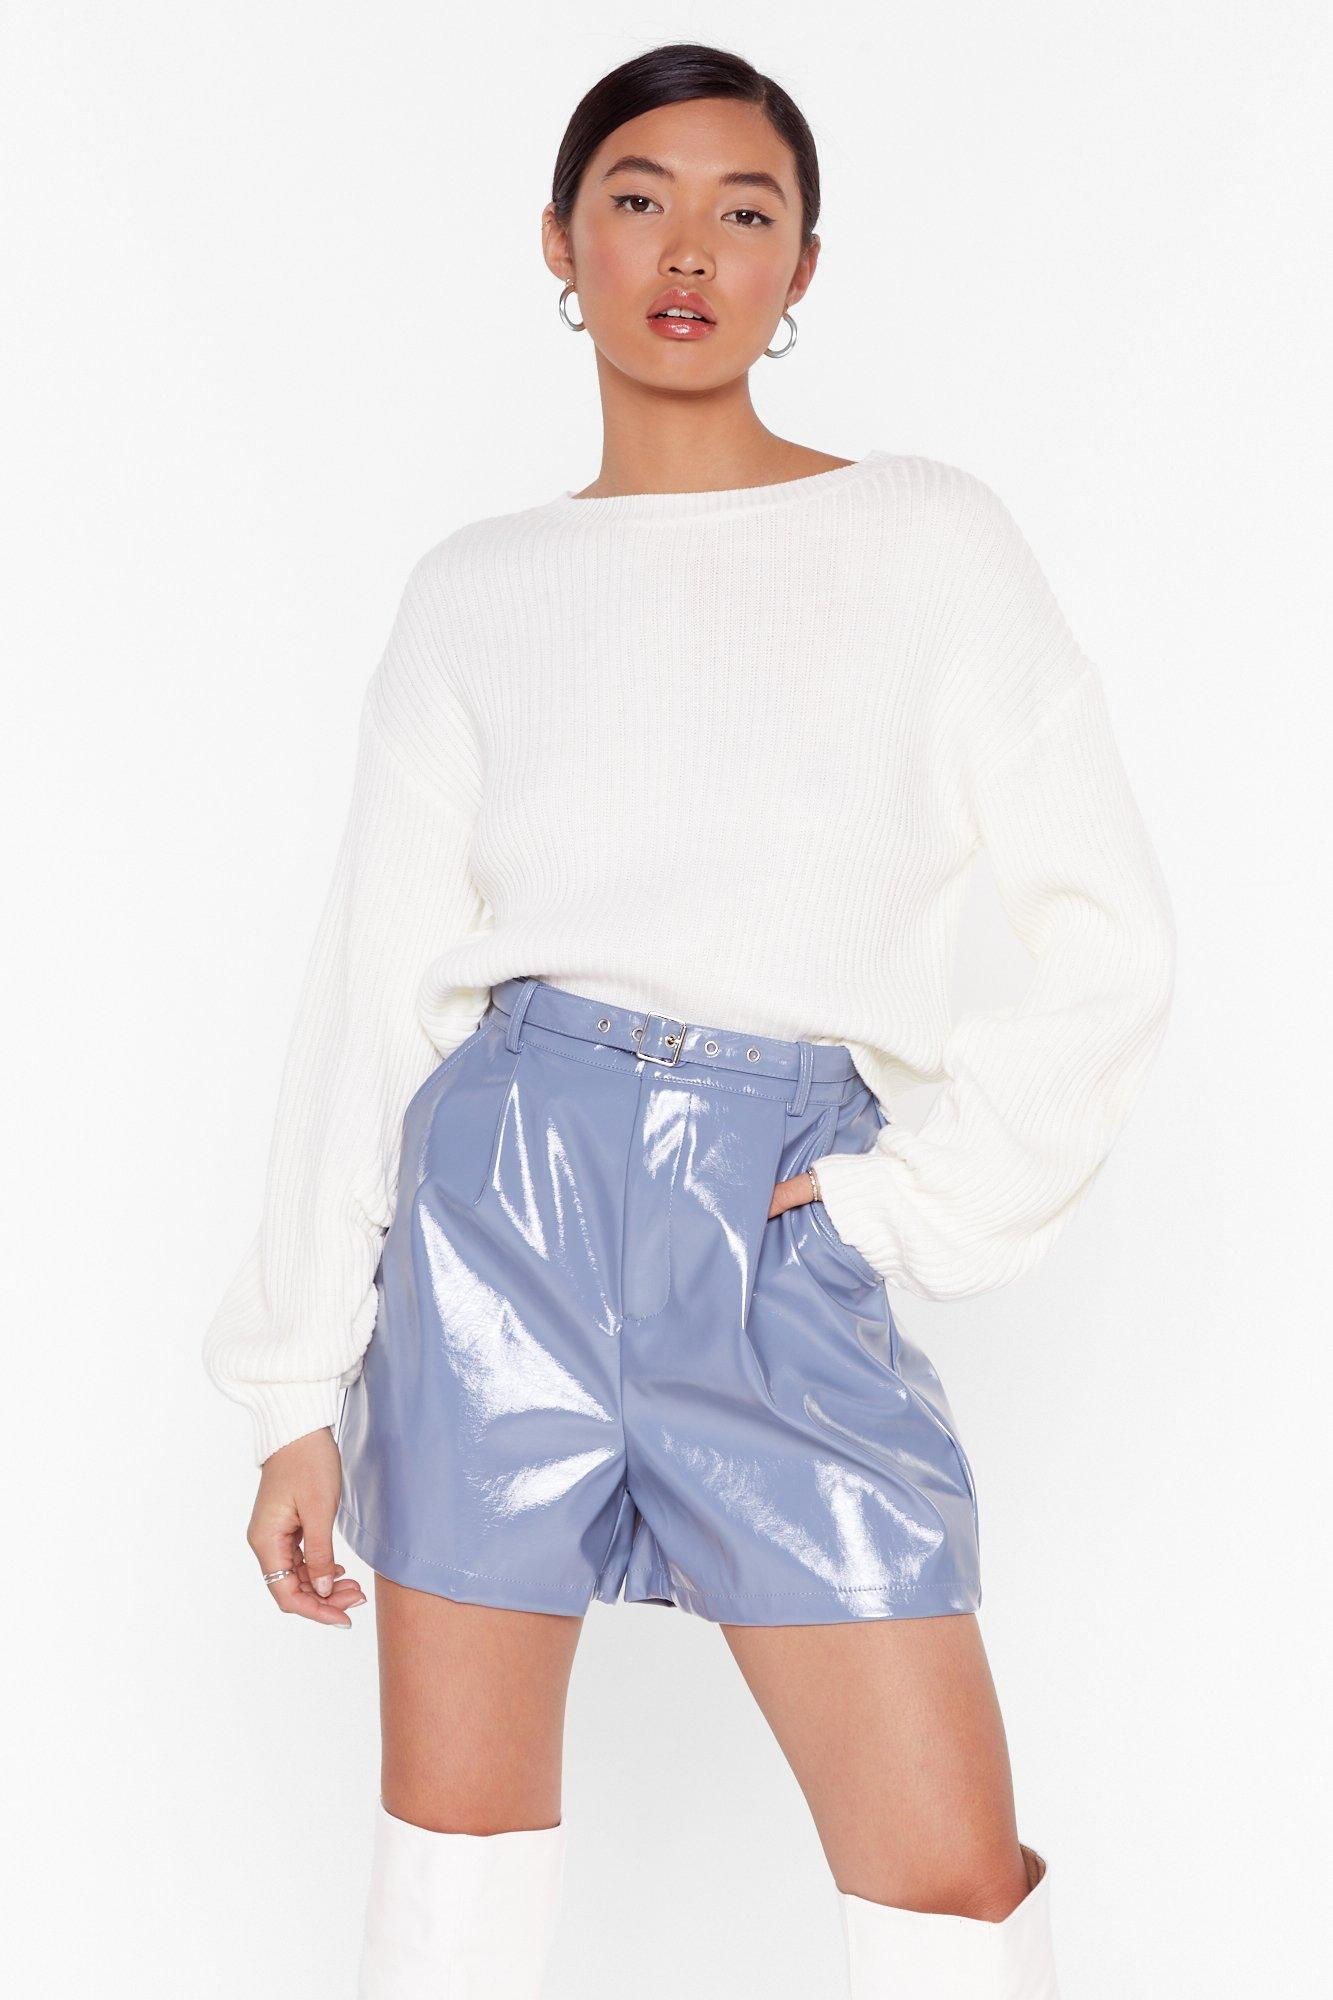 Image of The Vinyl Countdown High-Waisted Shorts